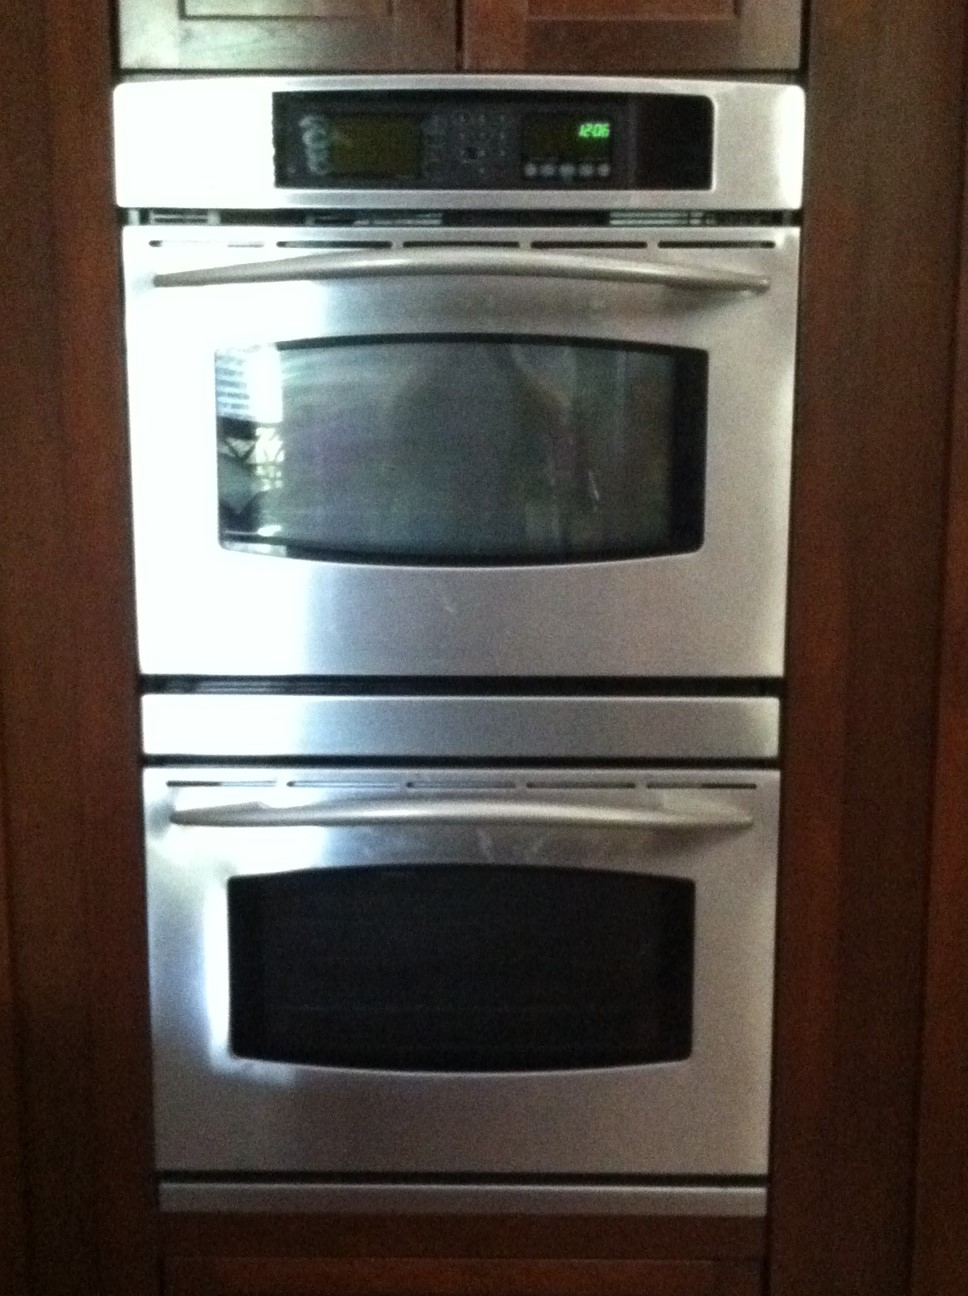 Control Panel Replacement - Built-in GE Profile Ovens